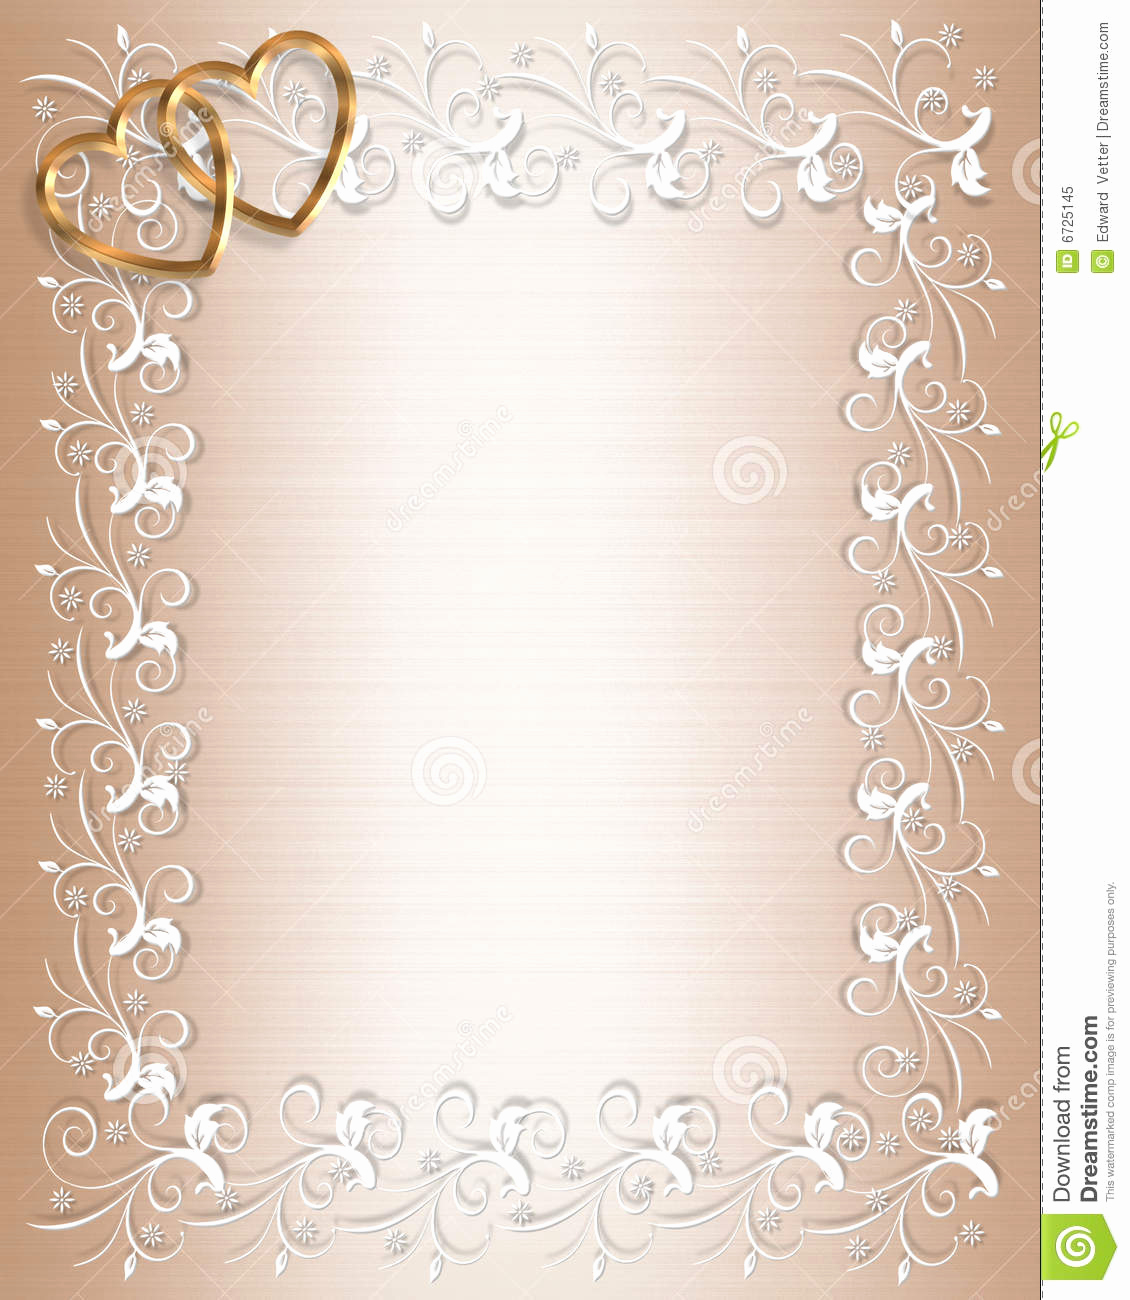 Wedding Invitation Background Designs Best Of Free Background Borders to Clipground